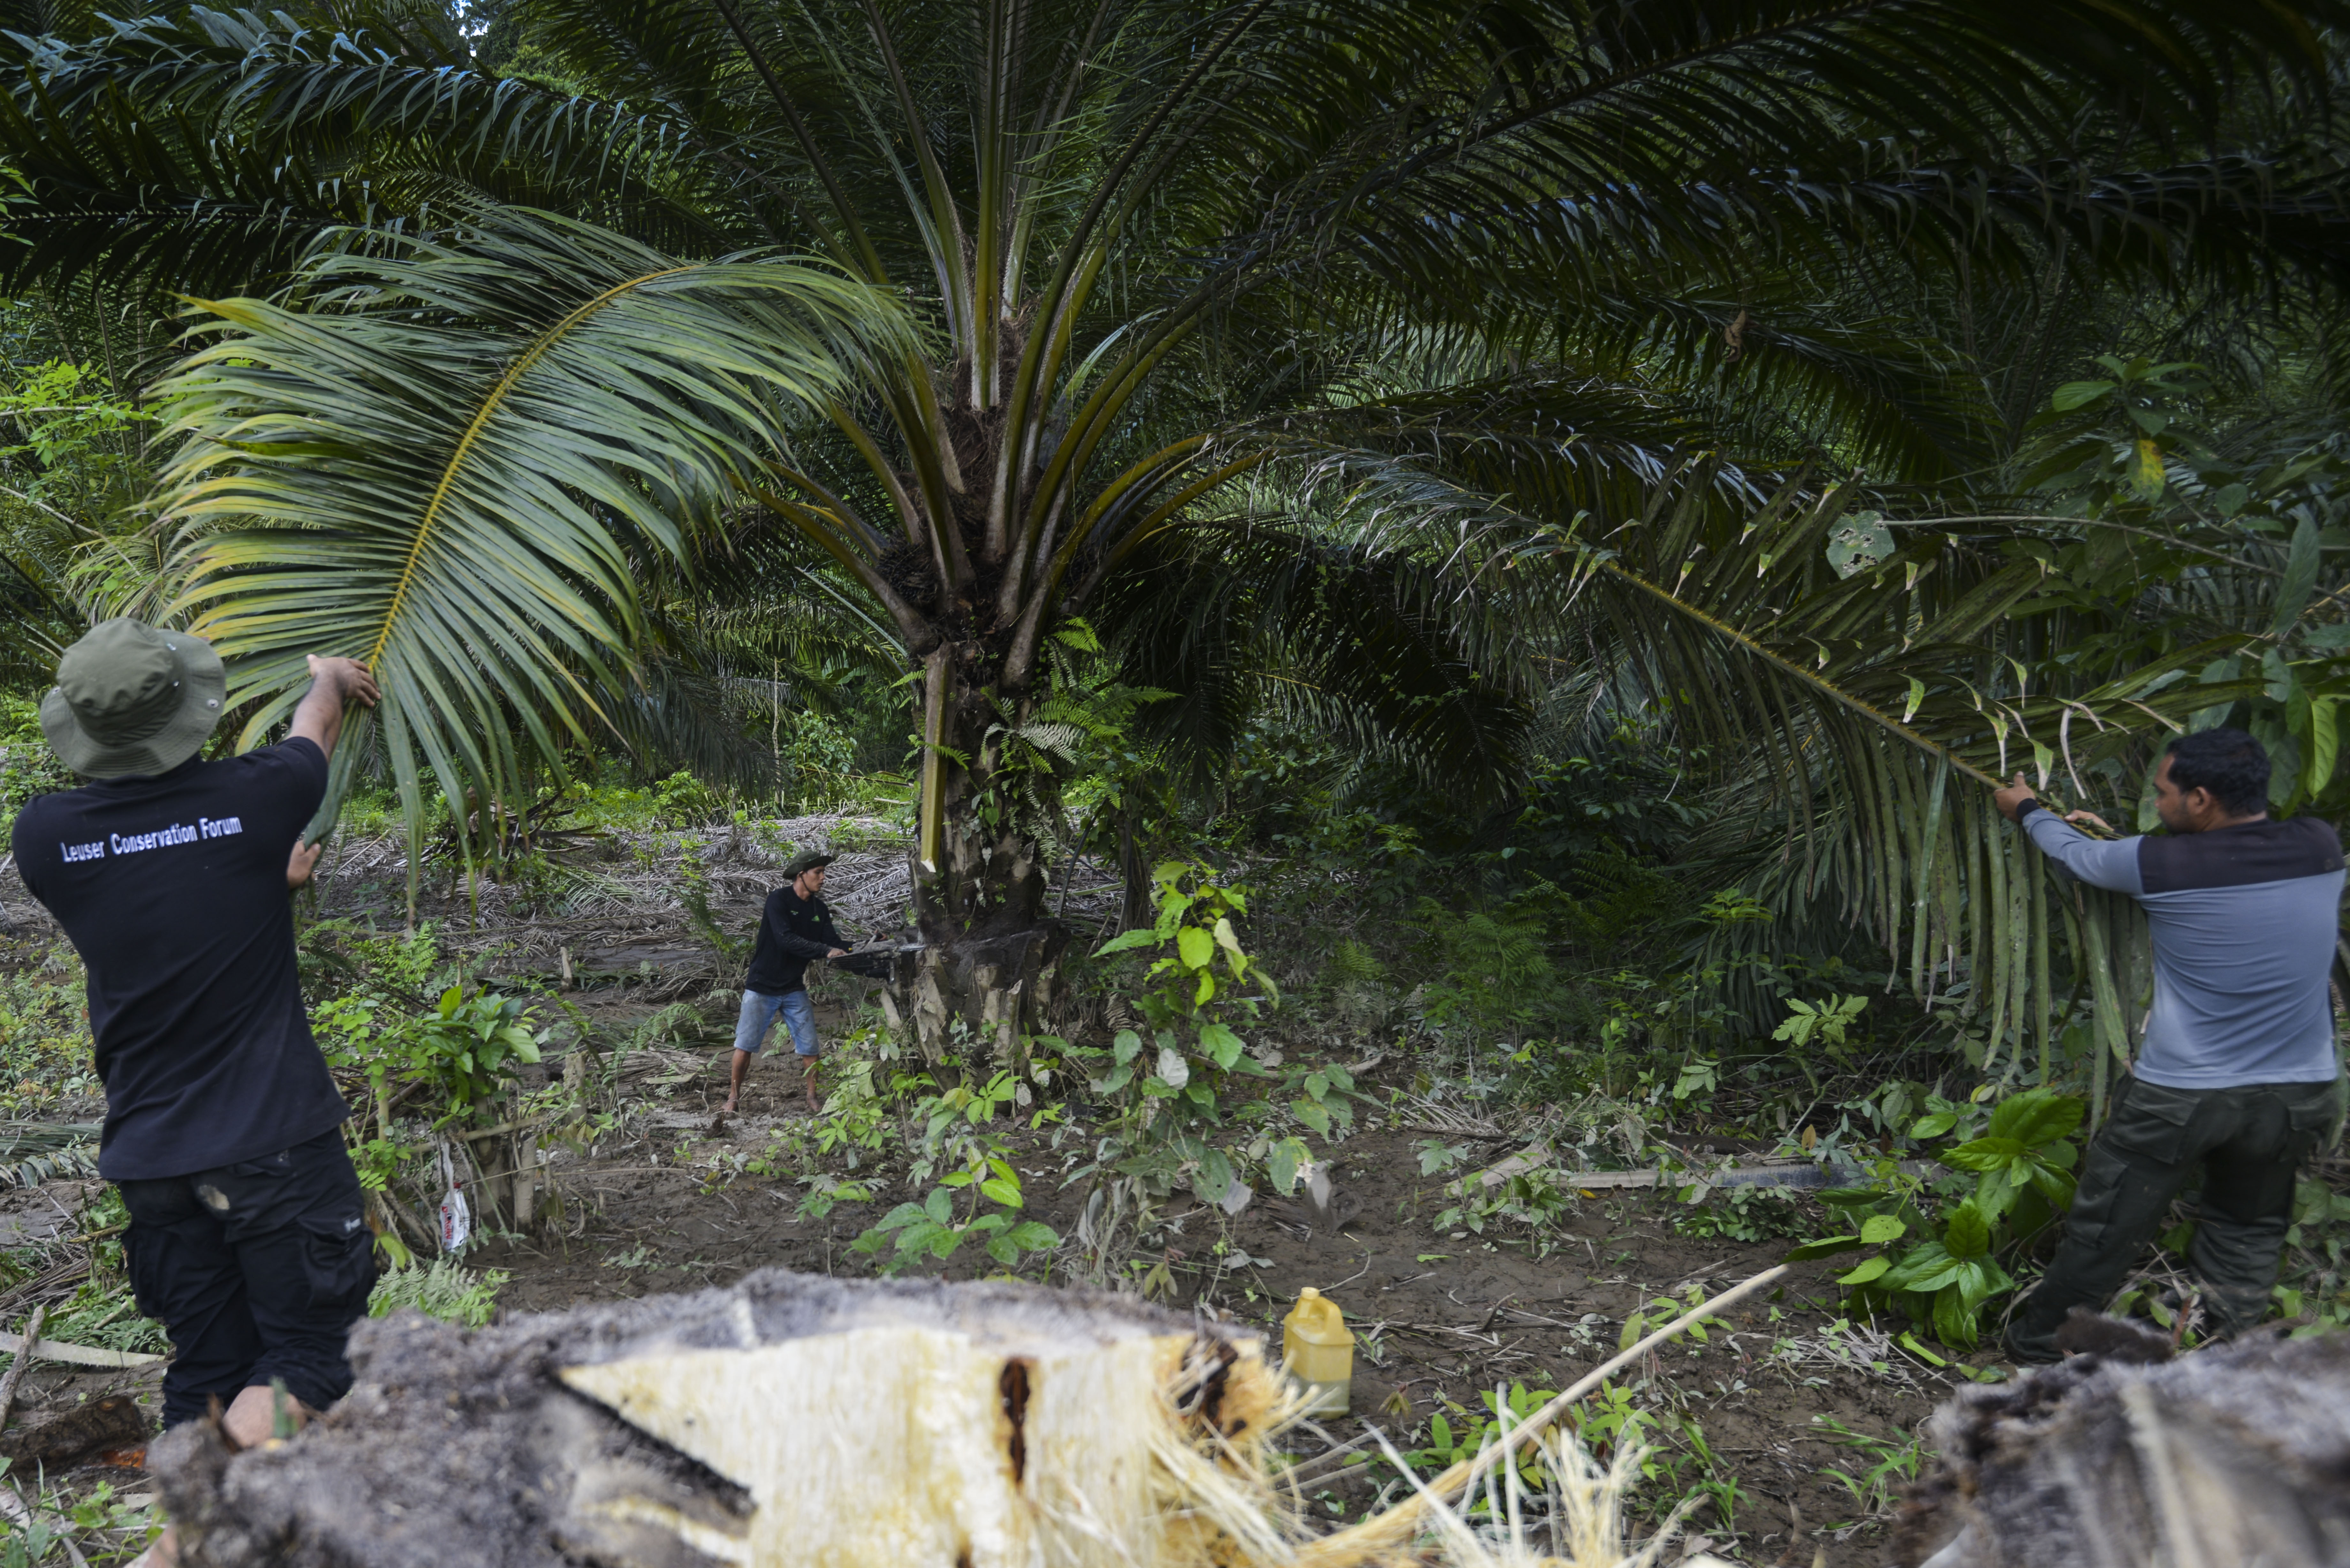 Indonesian rangers cut down illegal palm oil trees within the protected Leuser ecosystem rainforest in the Subulussalam district, Aceh province, Jan. 9, 2019.